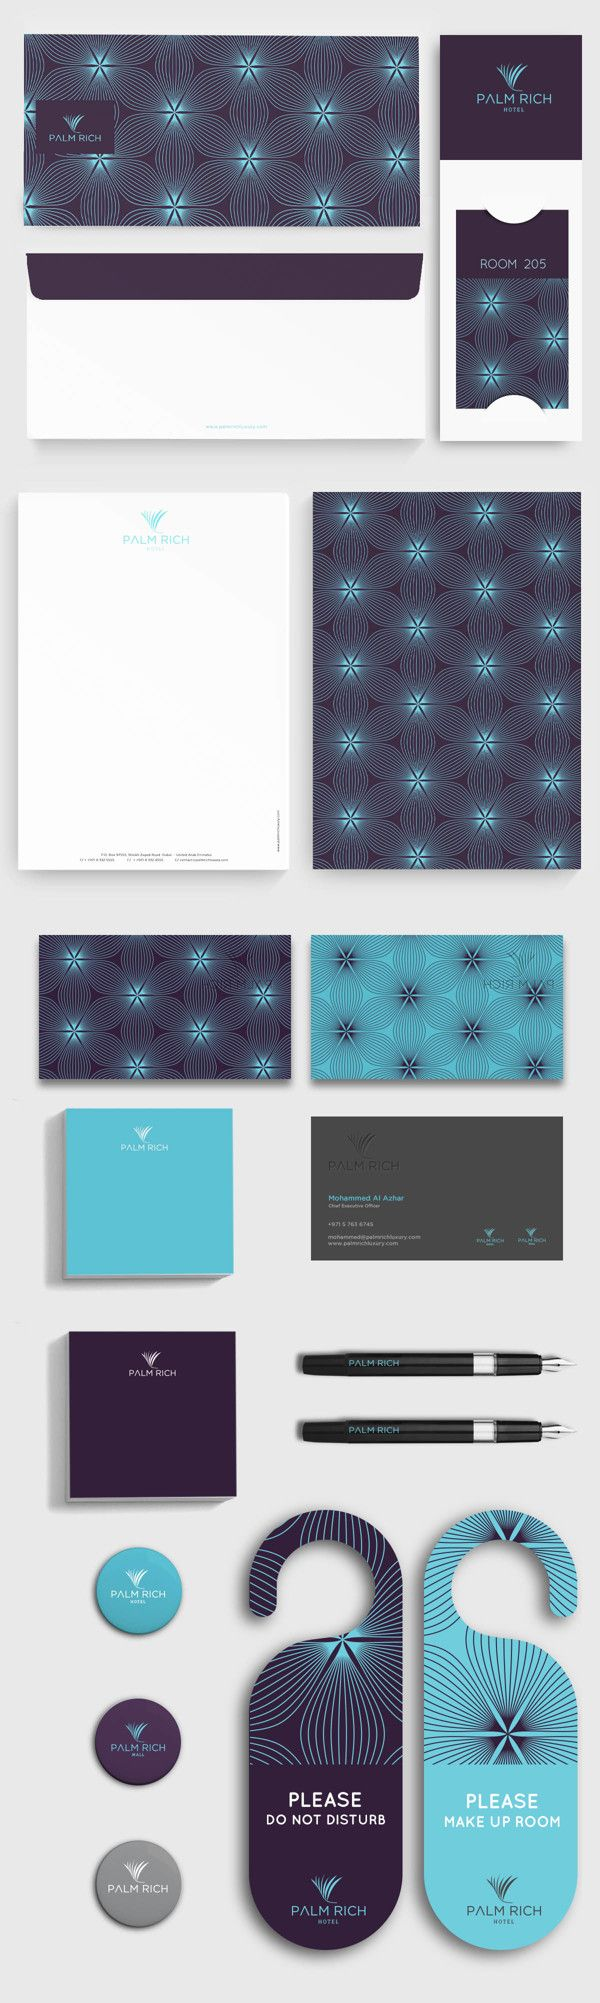 flower looking abstract design with blue colors. Palm Rich Hotel by nero-design